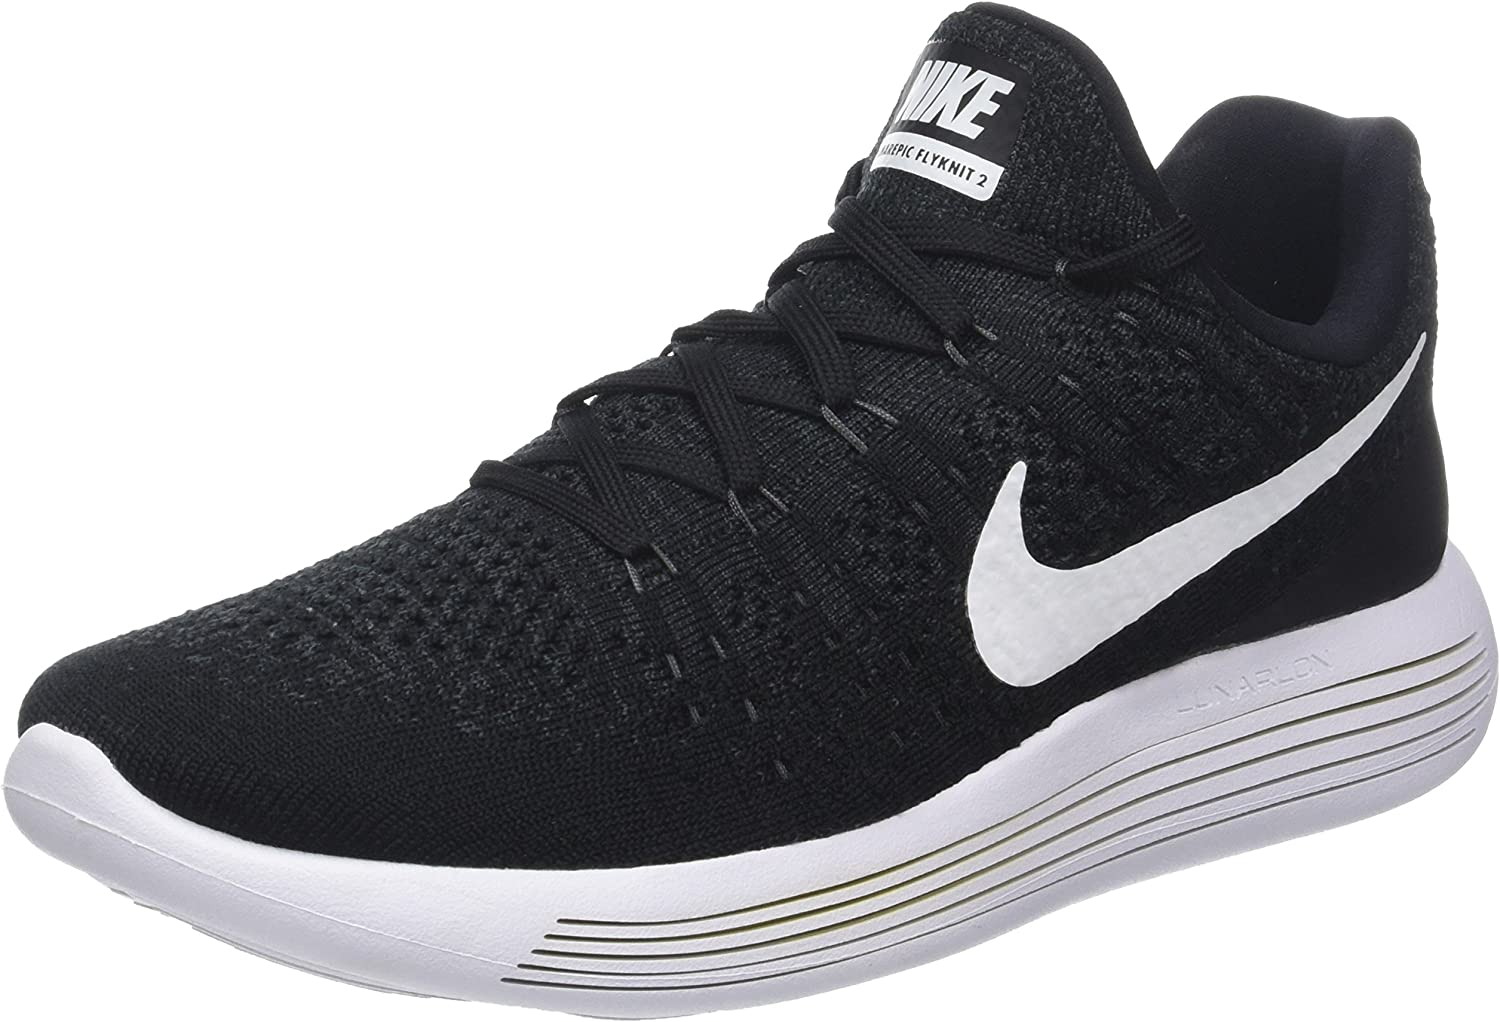 Nike Men's Lunarepic Low Flyknit 2 Training shoes